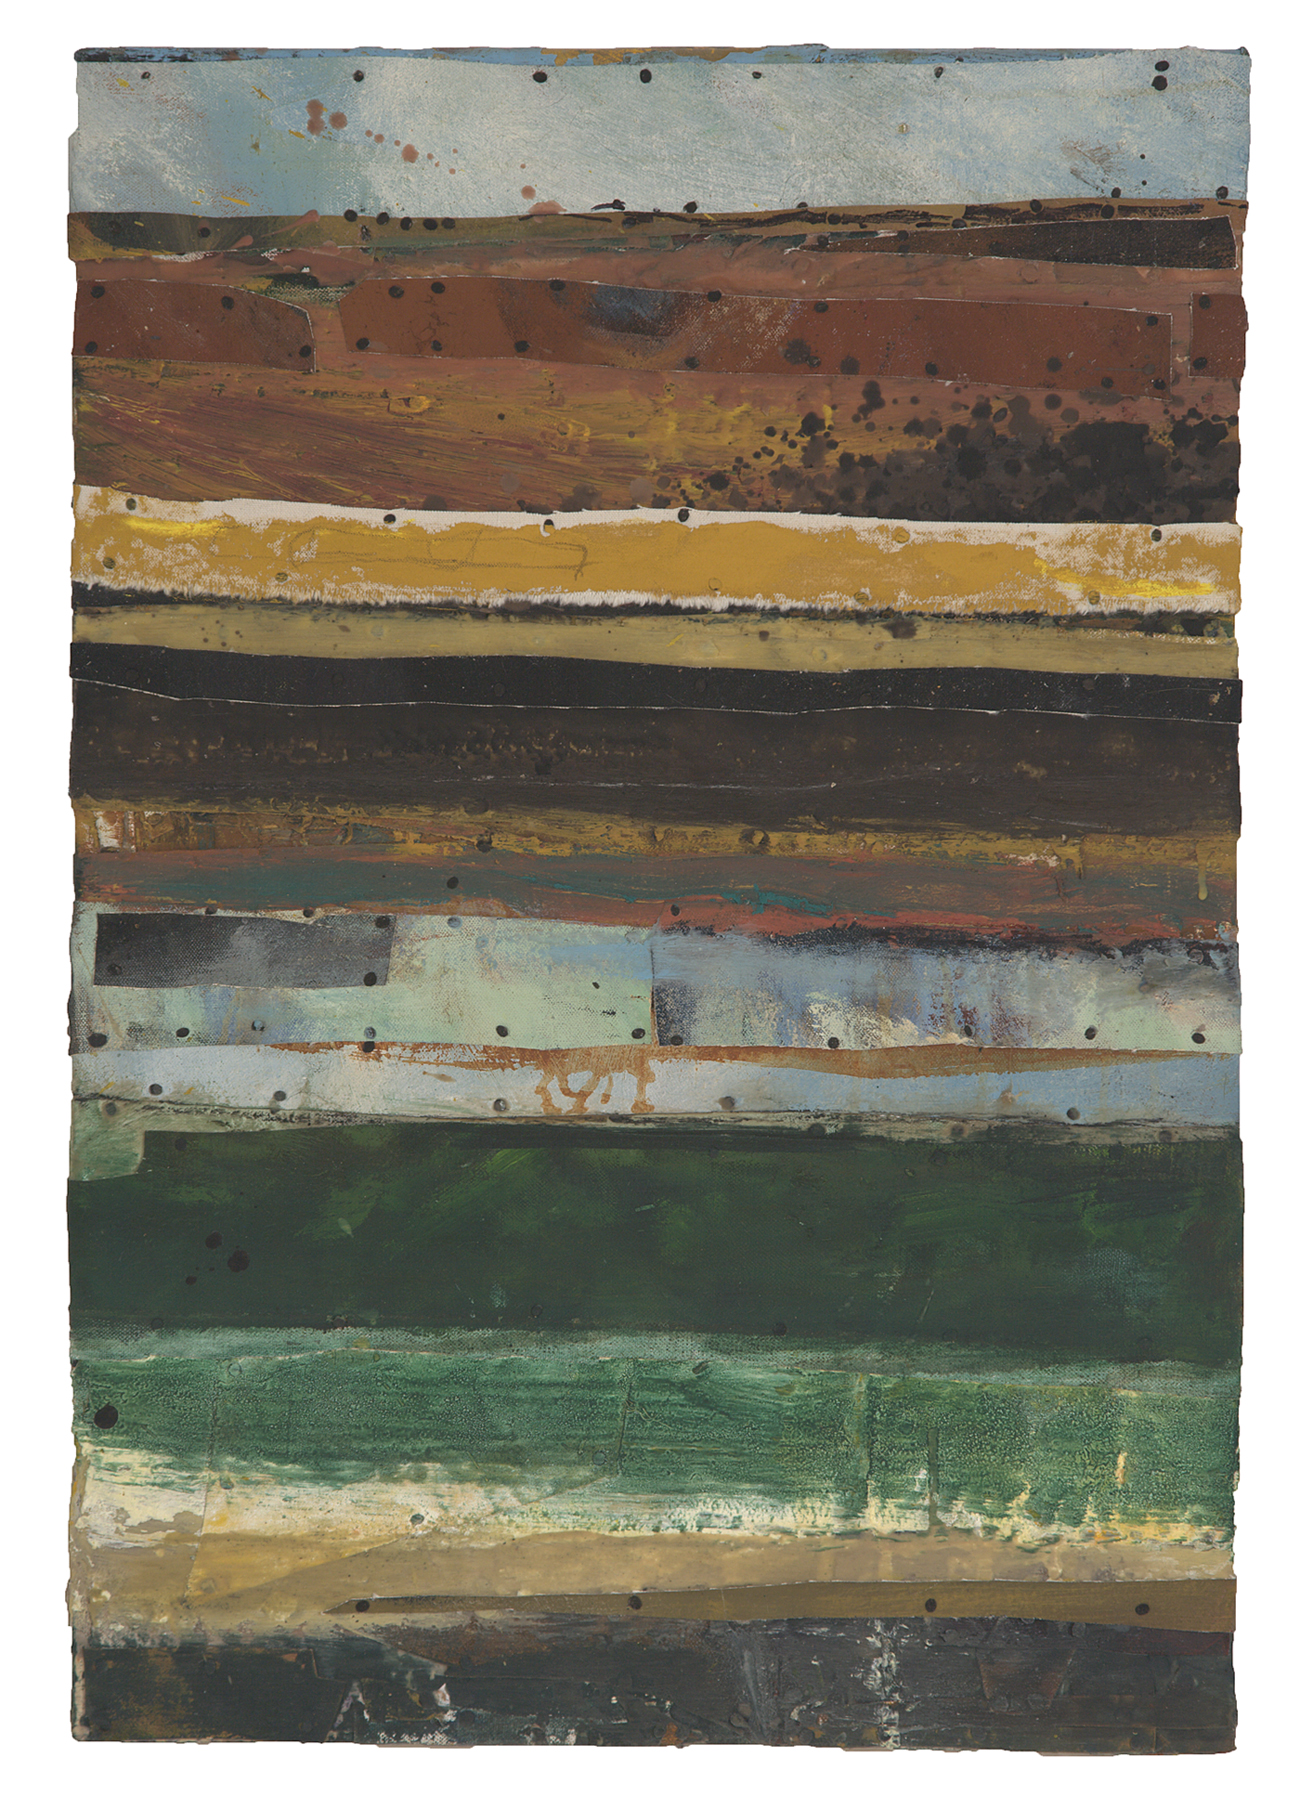 NEW BEGINNINGS, 2008  Encaustics and mixed media on panel  25 1/4 x 17 1/2 inches